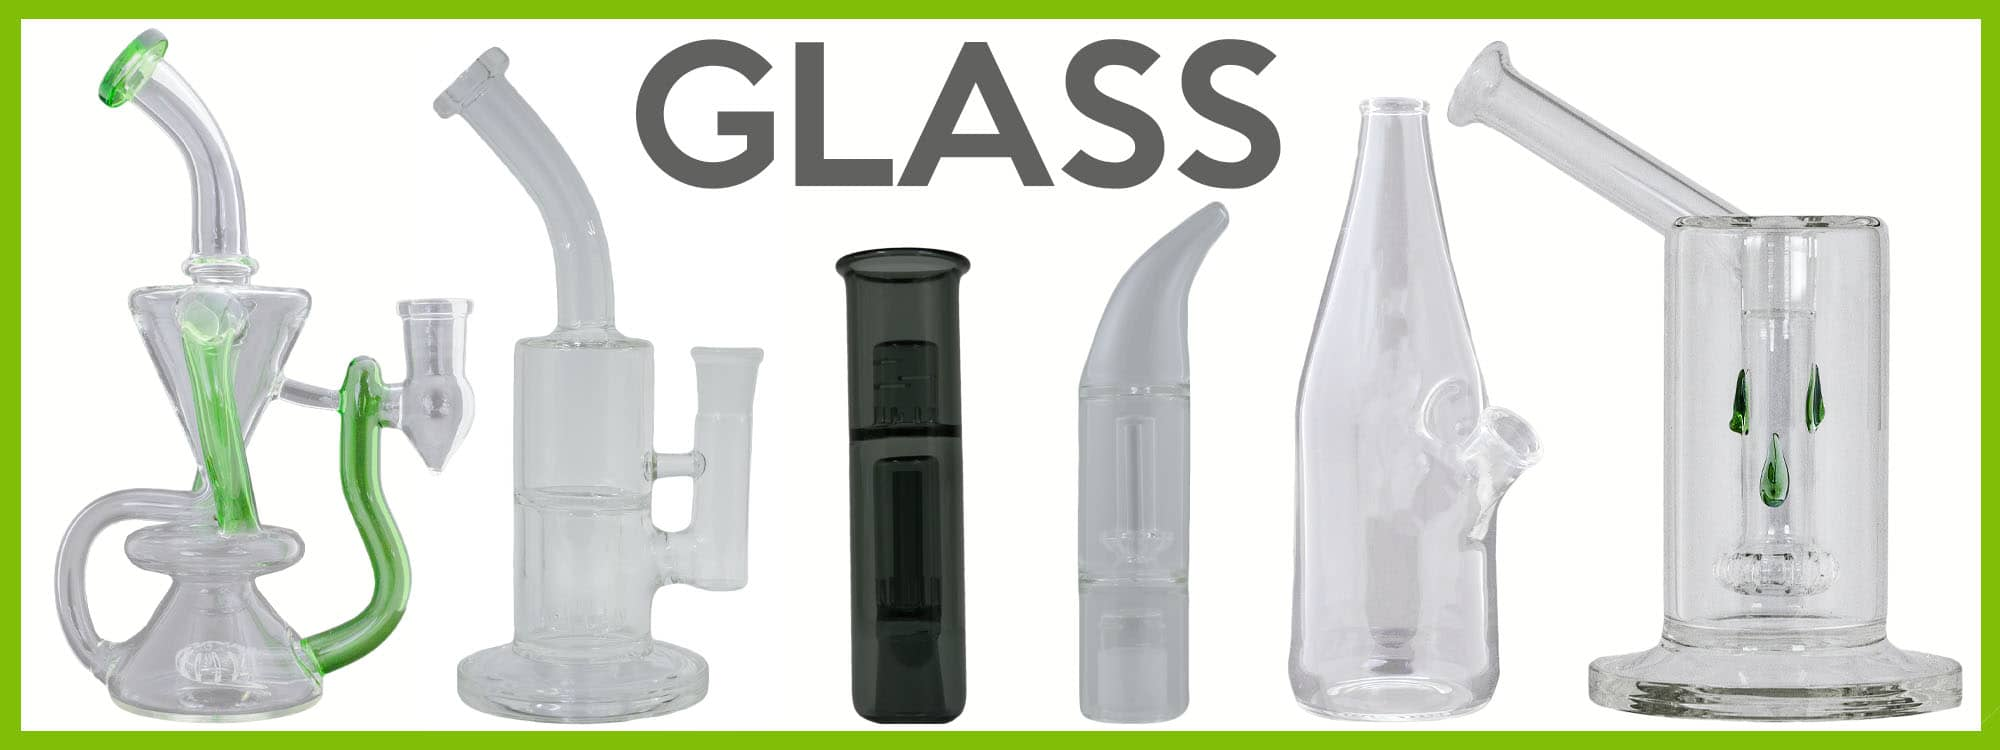 puffitup glass sale green friday